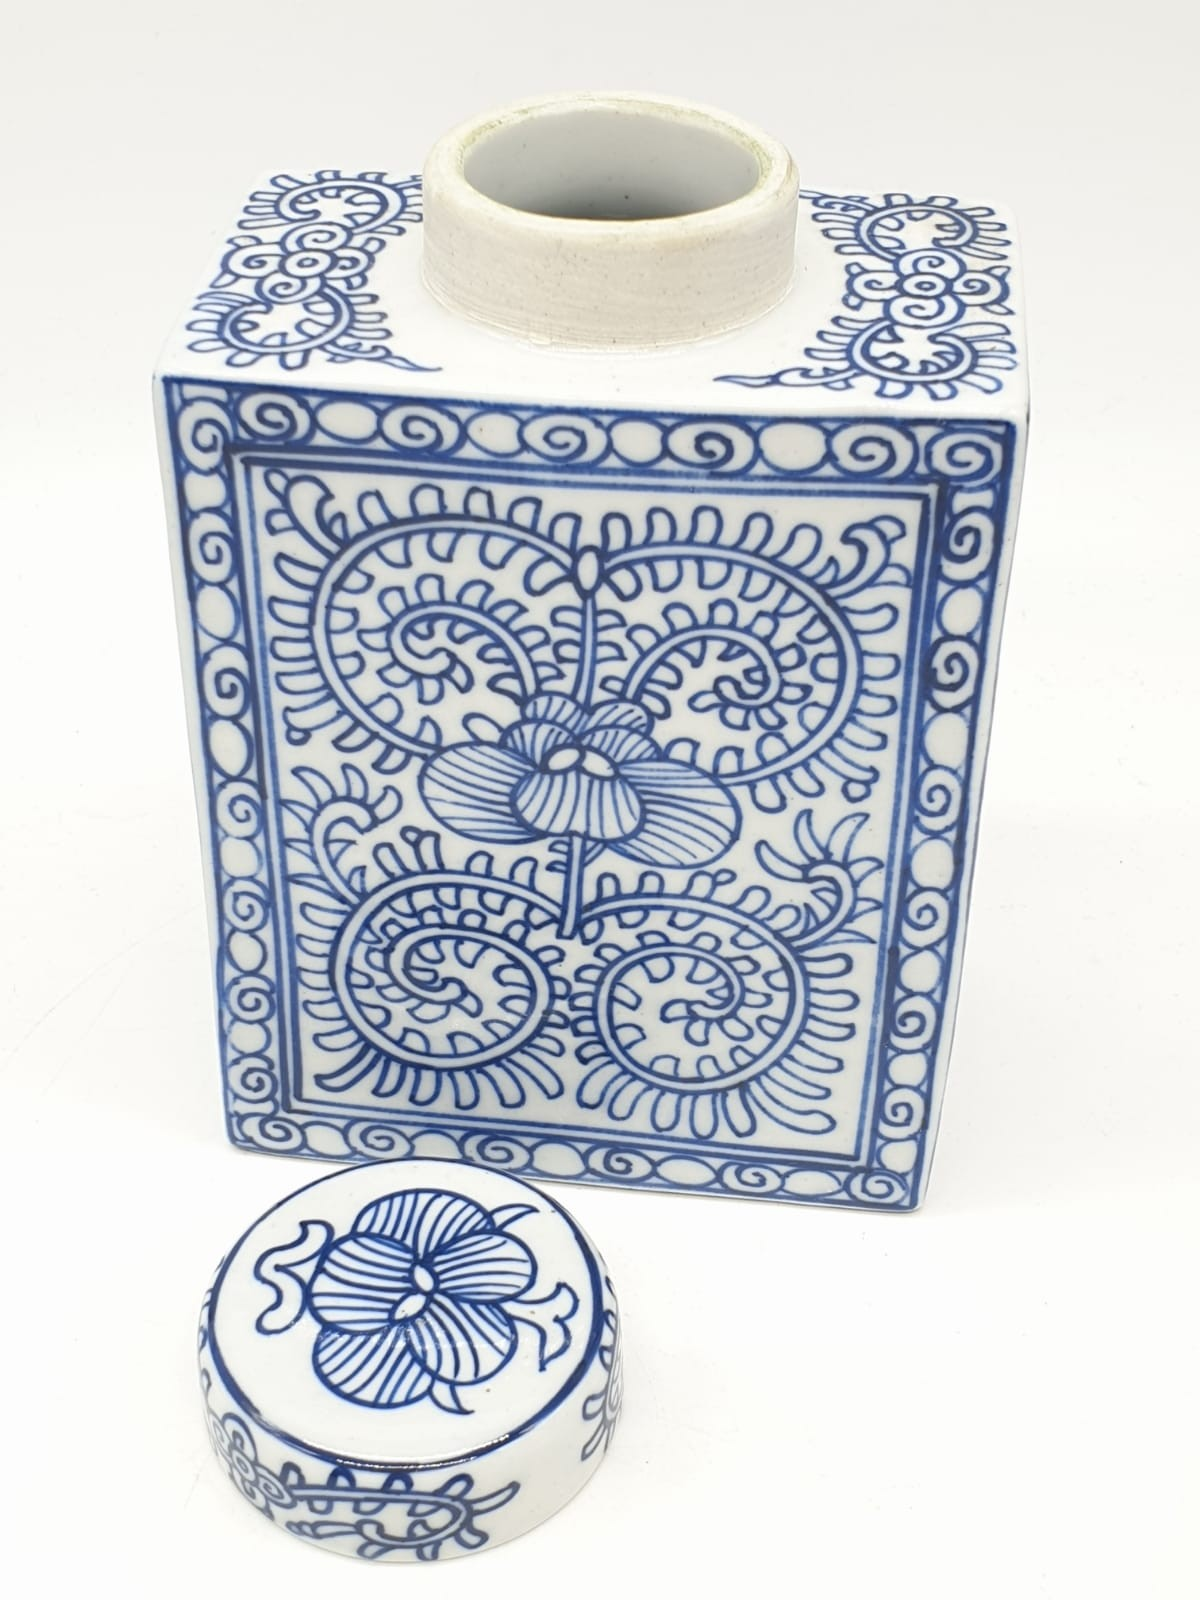 A Japanese, white and blue hand painted, rectangular, porcelain, storage jar, with lid. - Image 3 of 12